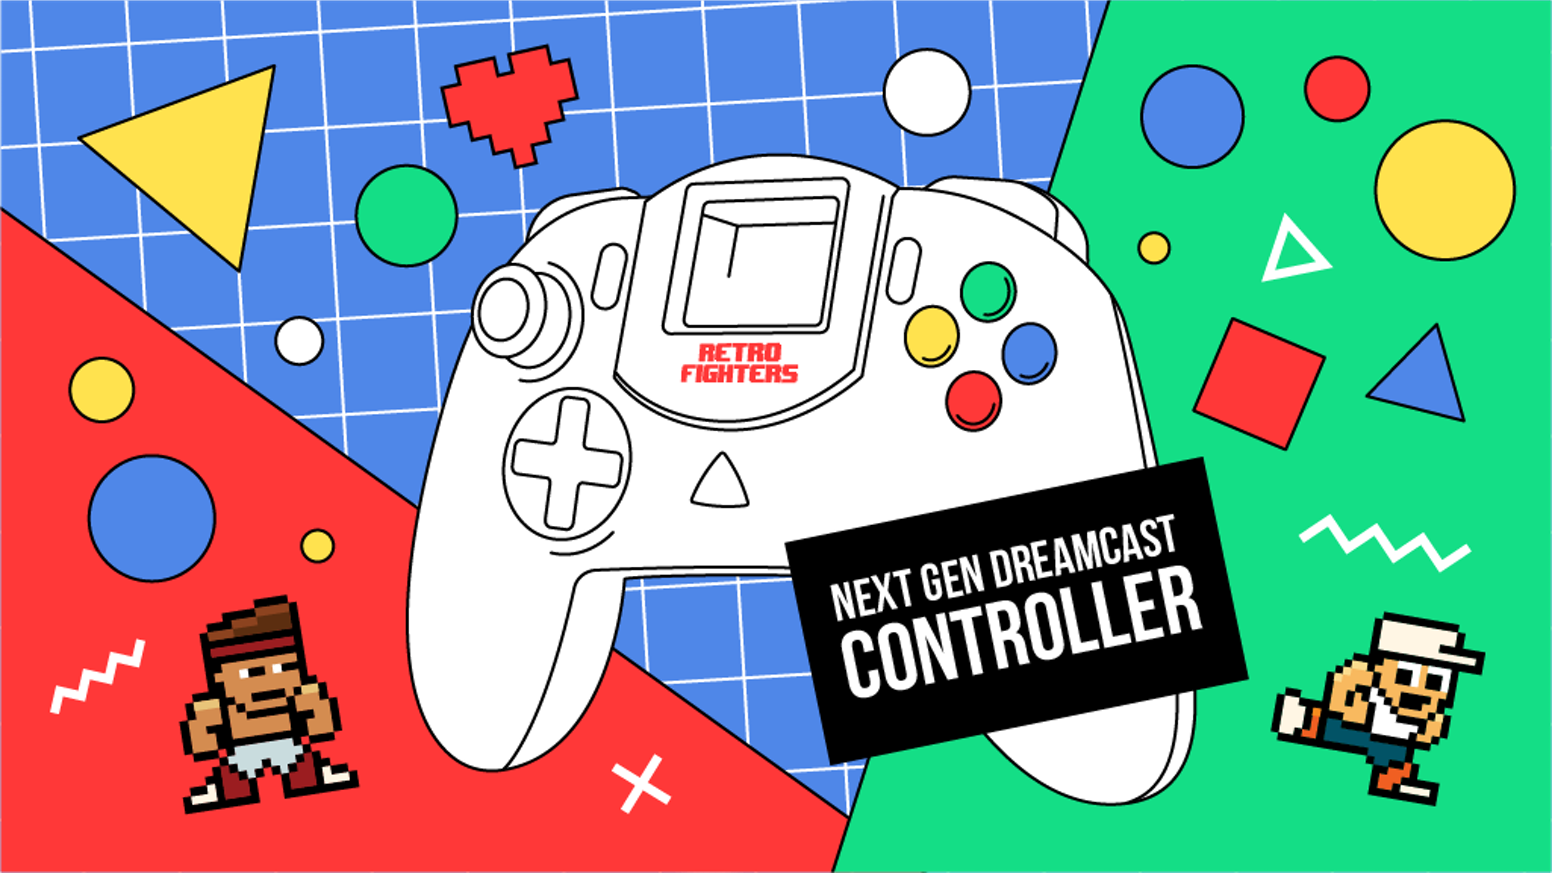 Retro Fighters Dreamcast Controller Update